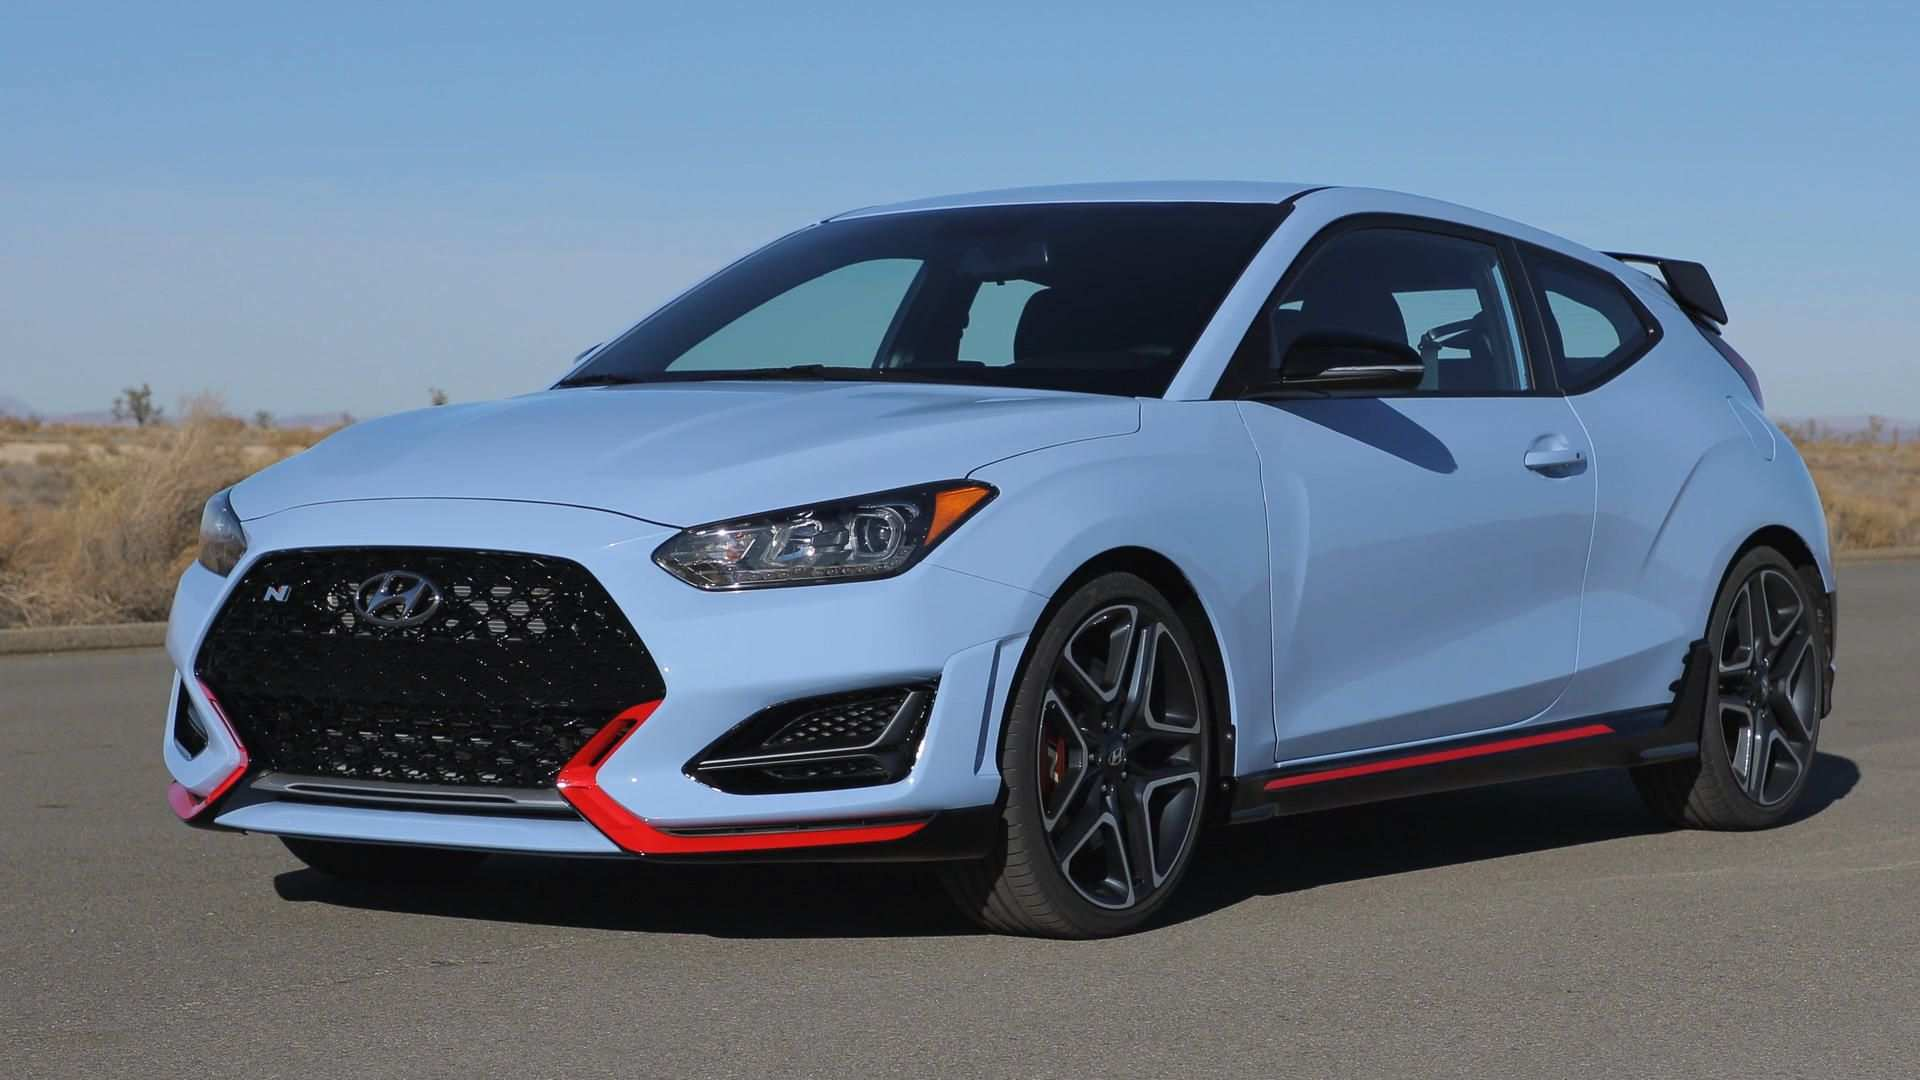 21 Best 2020 Hyundai Veloster Performance